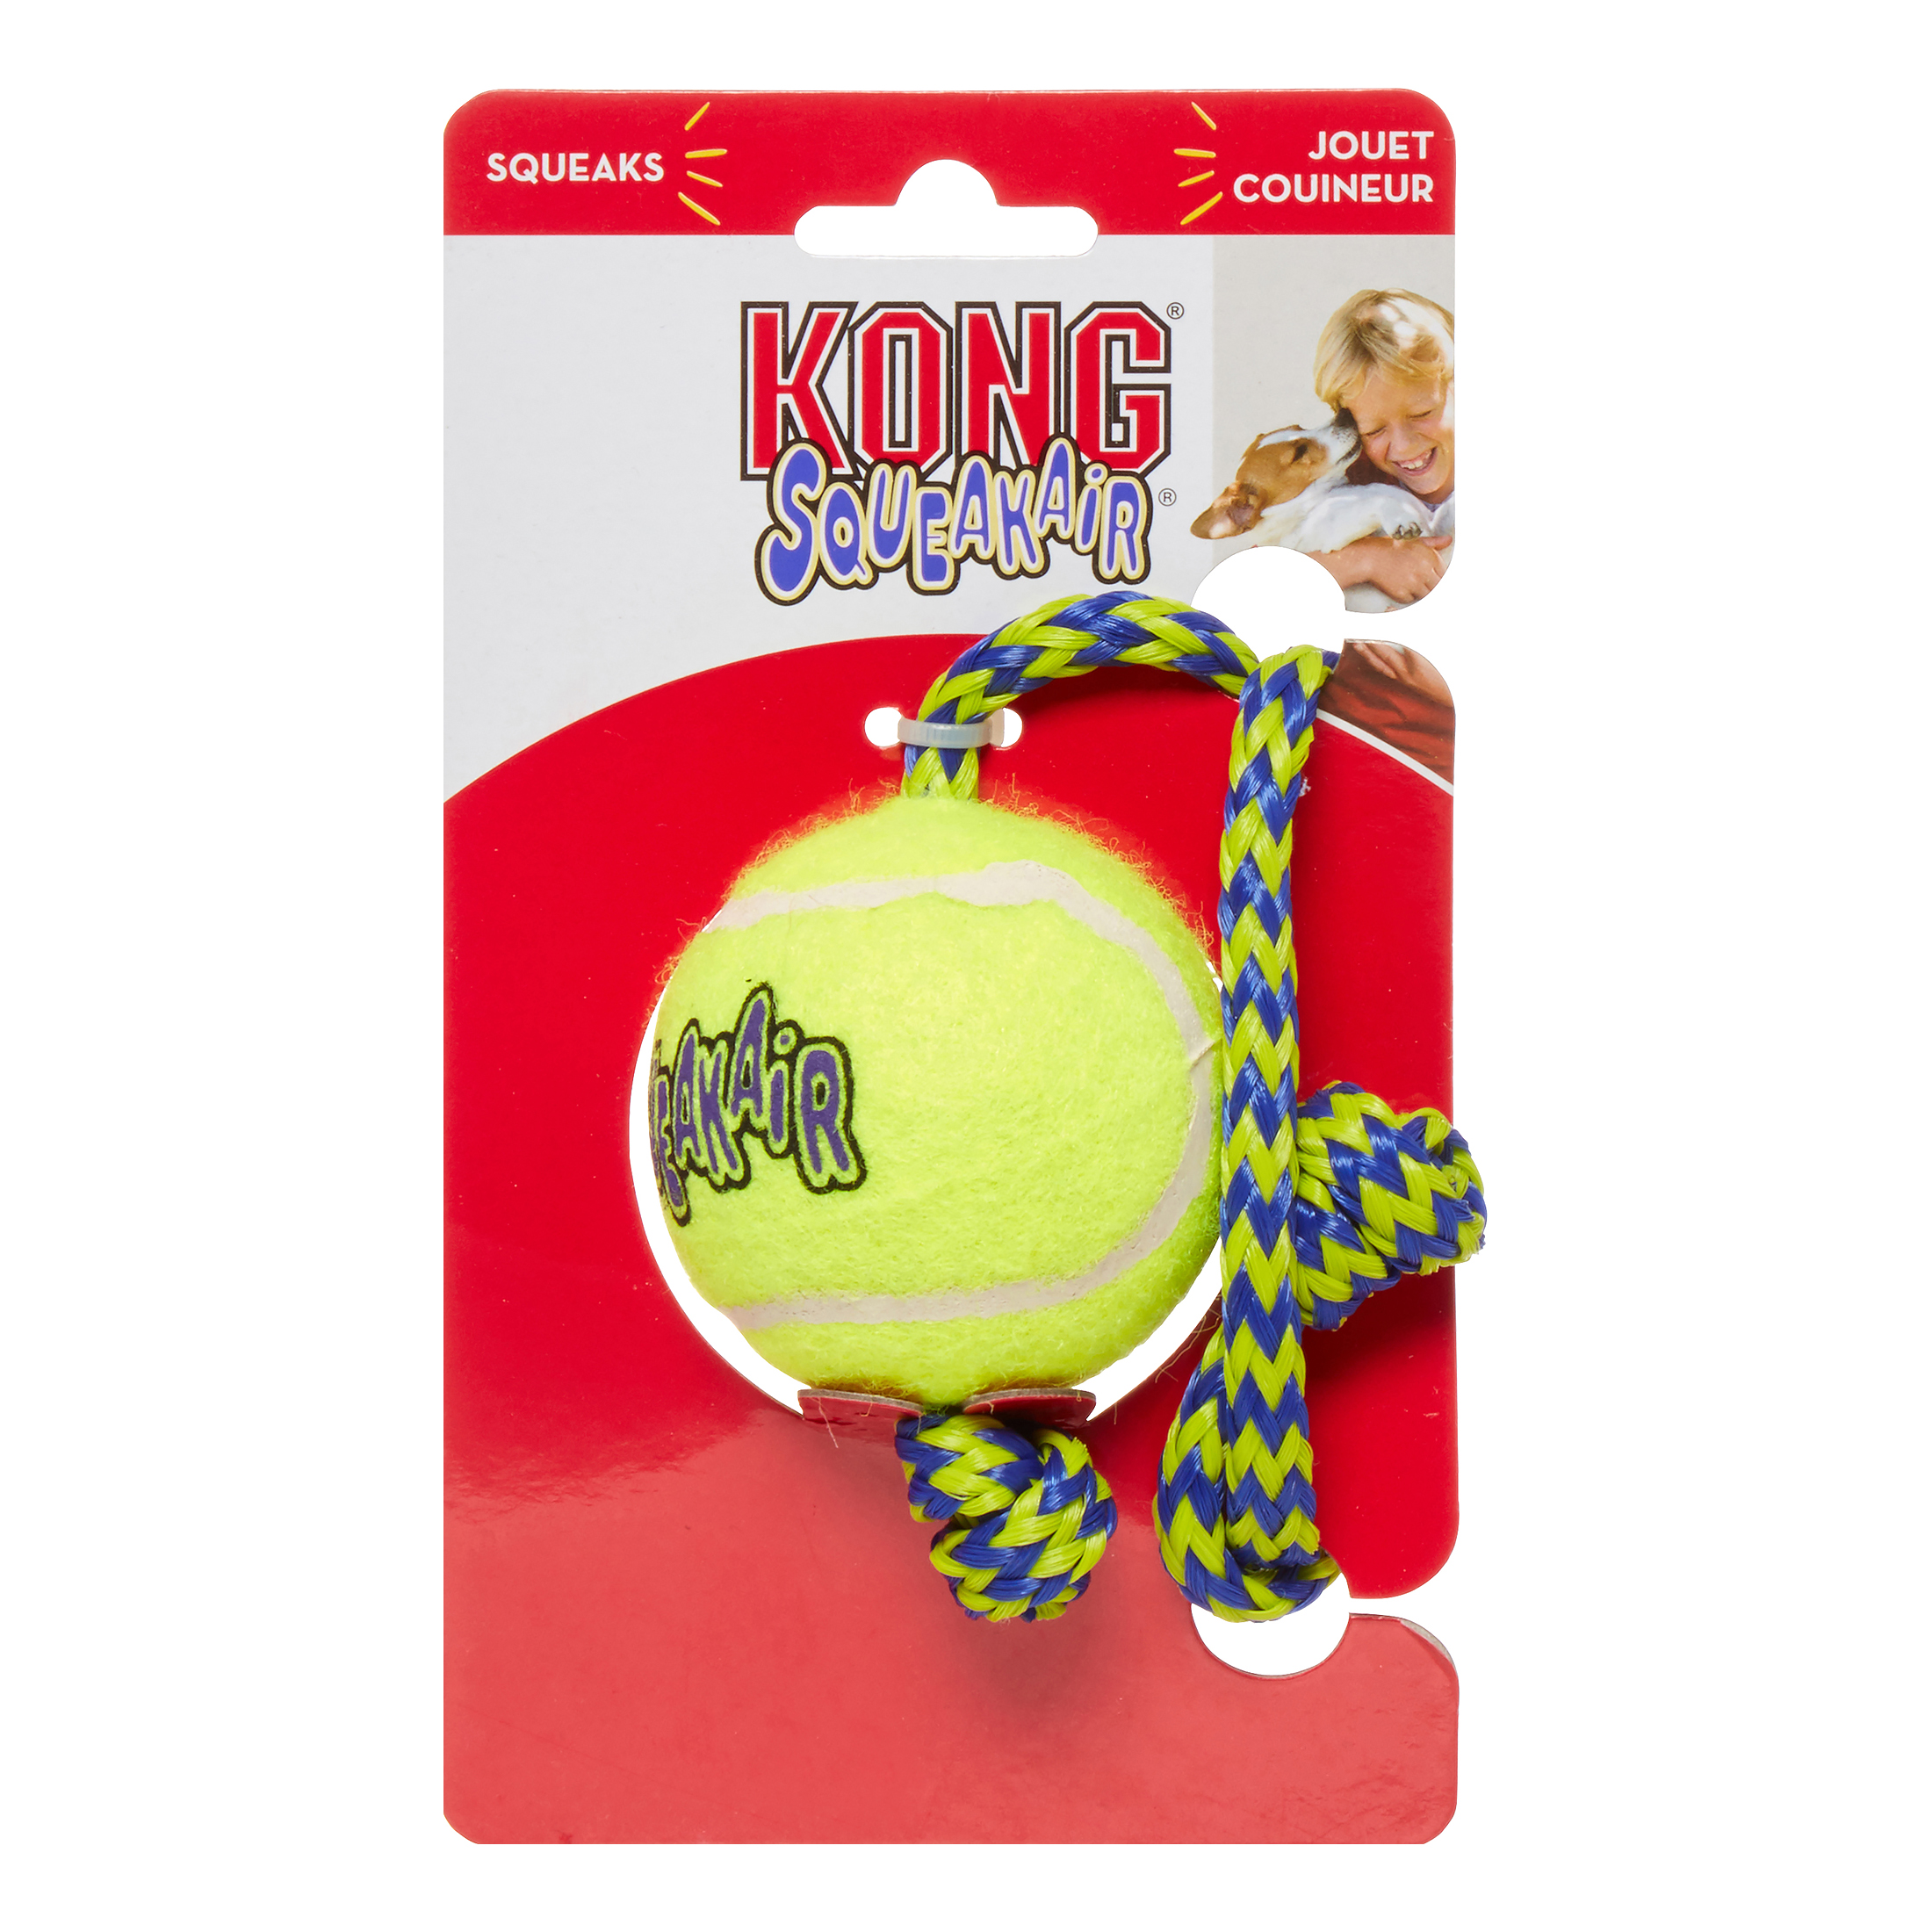 KONG SqueakAir Dog Toy, Medium